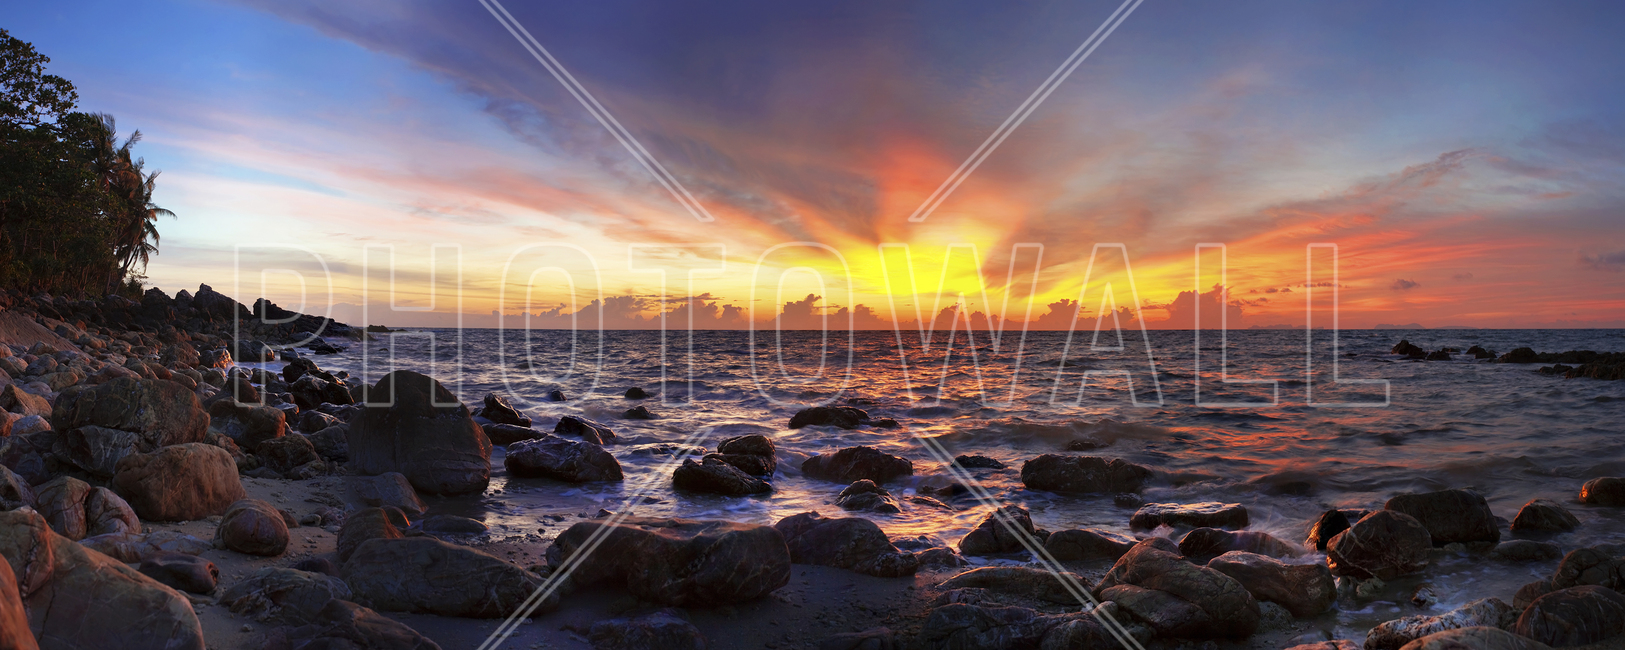 wild sunset wall mural amp photo wallpaper photowall sunset and surf in france wallpaper wall mural self